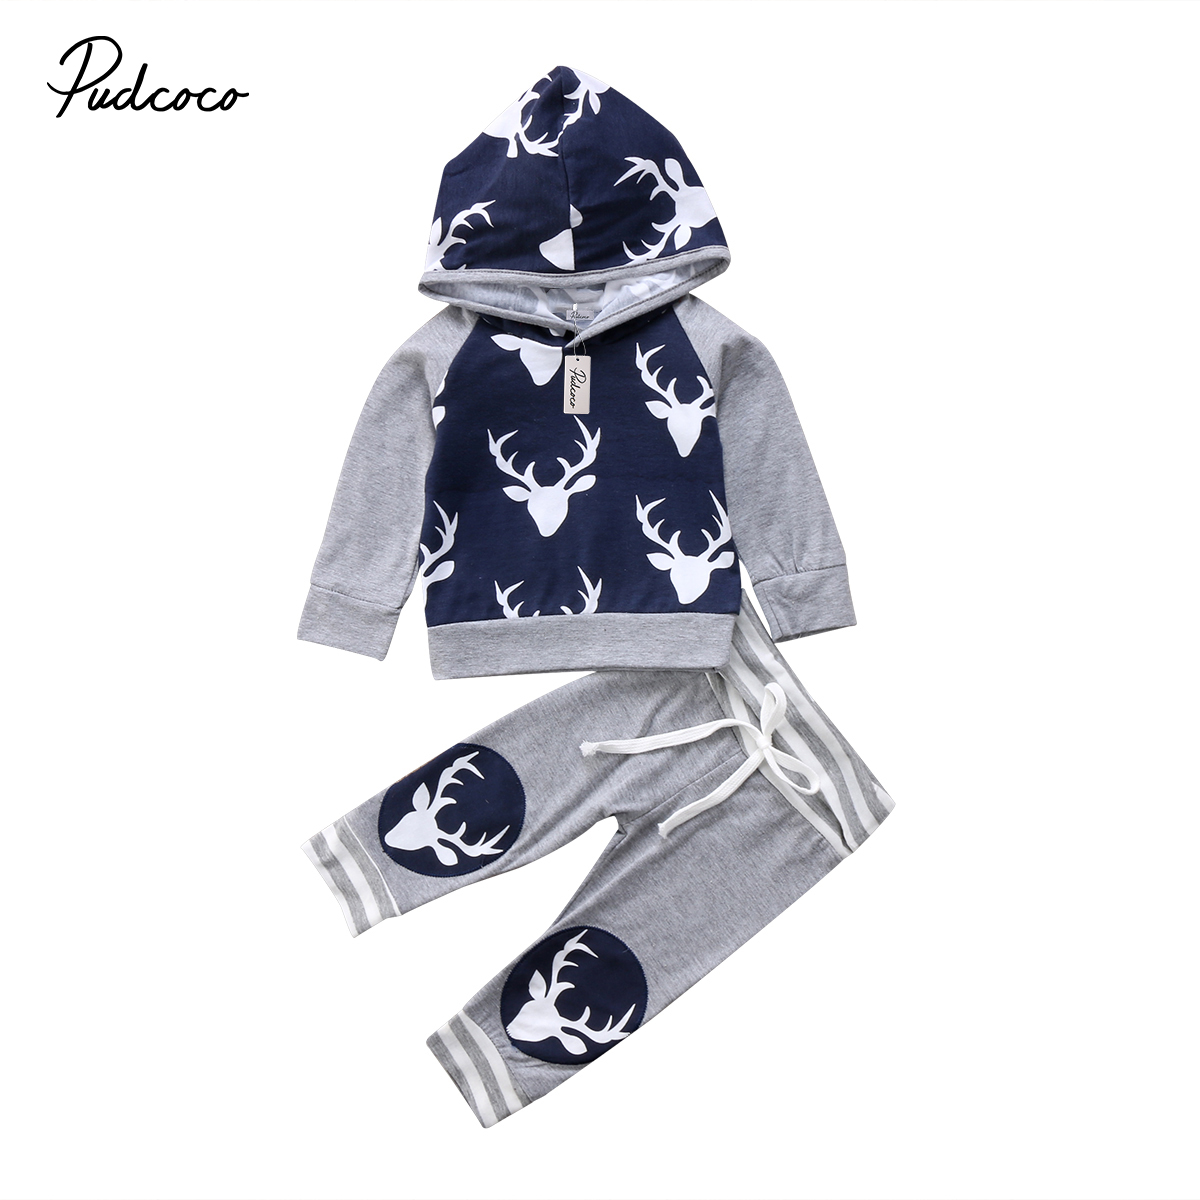 Pudcoco 2Pcs Newborn Toddler Baby Boys Clothes Deer Hooded Tops Long Pants Outfits Set 6-24Months Helen115